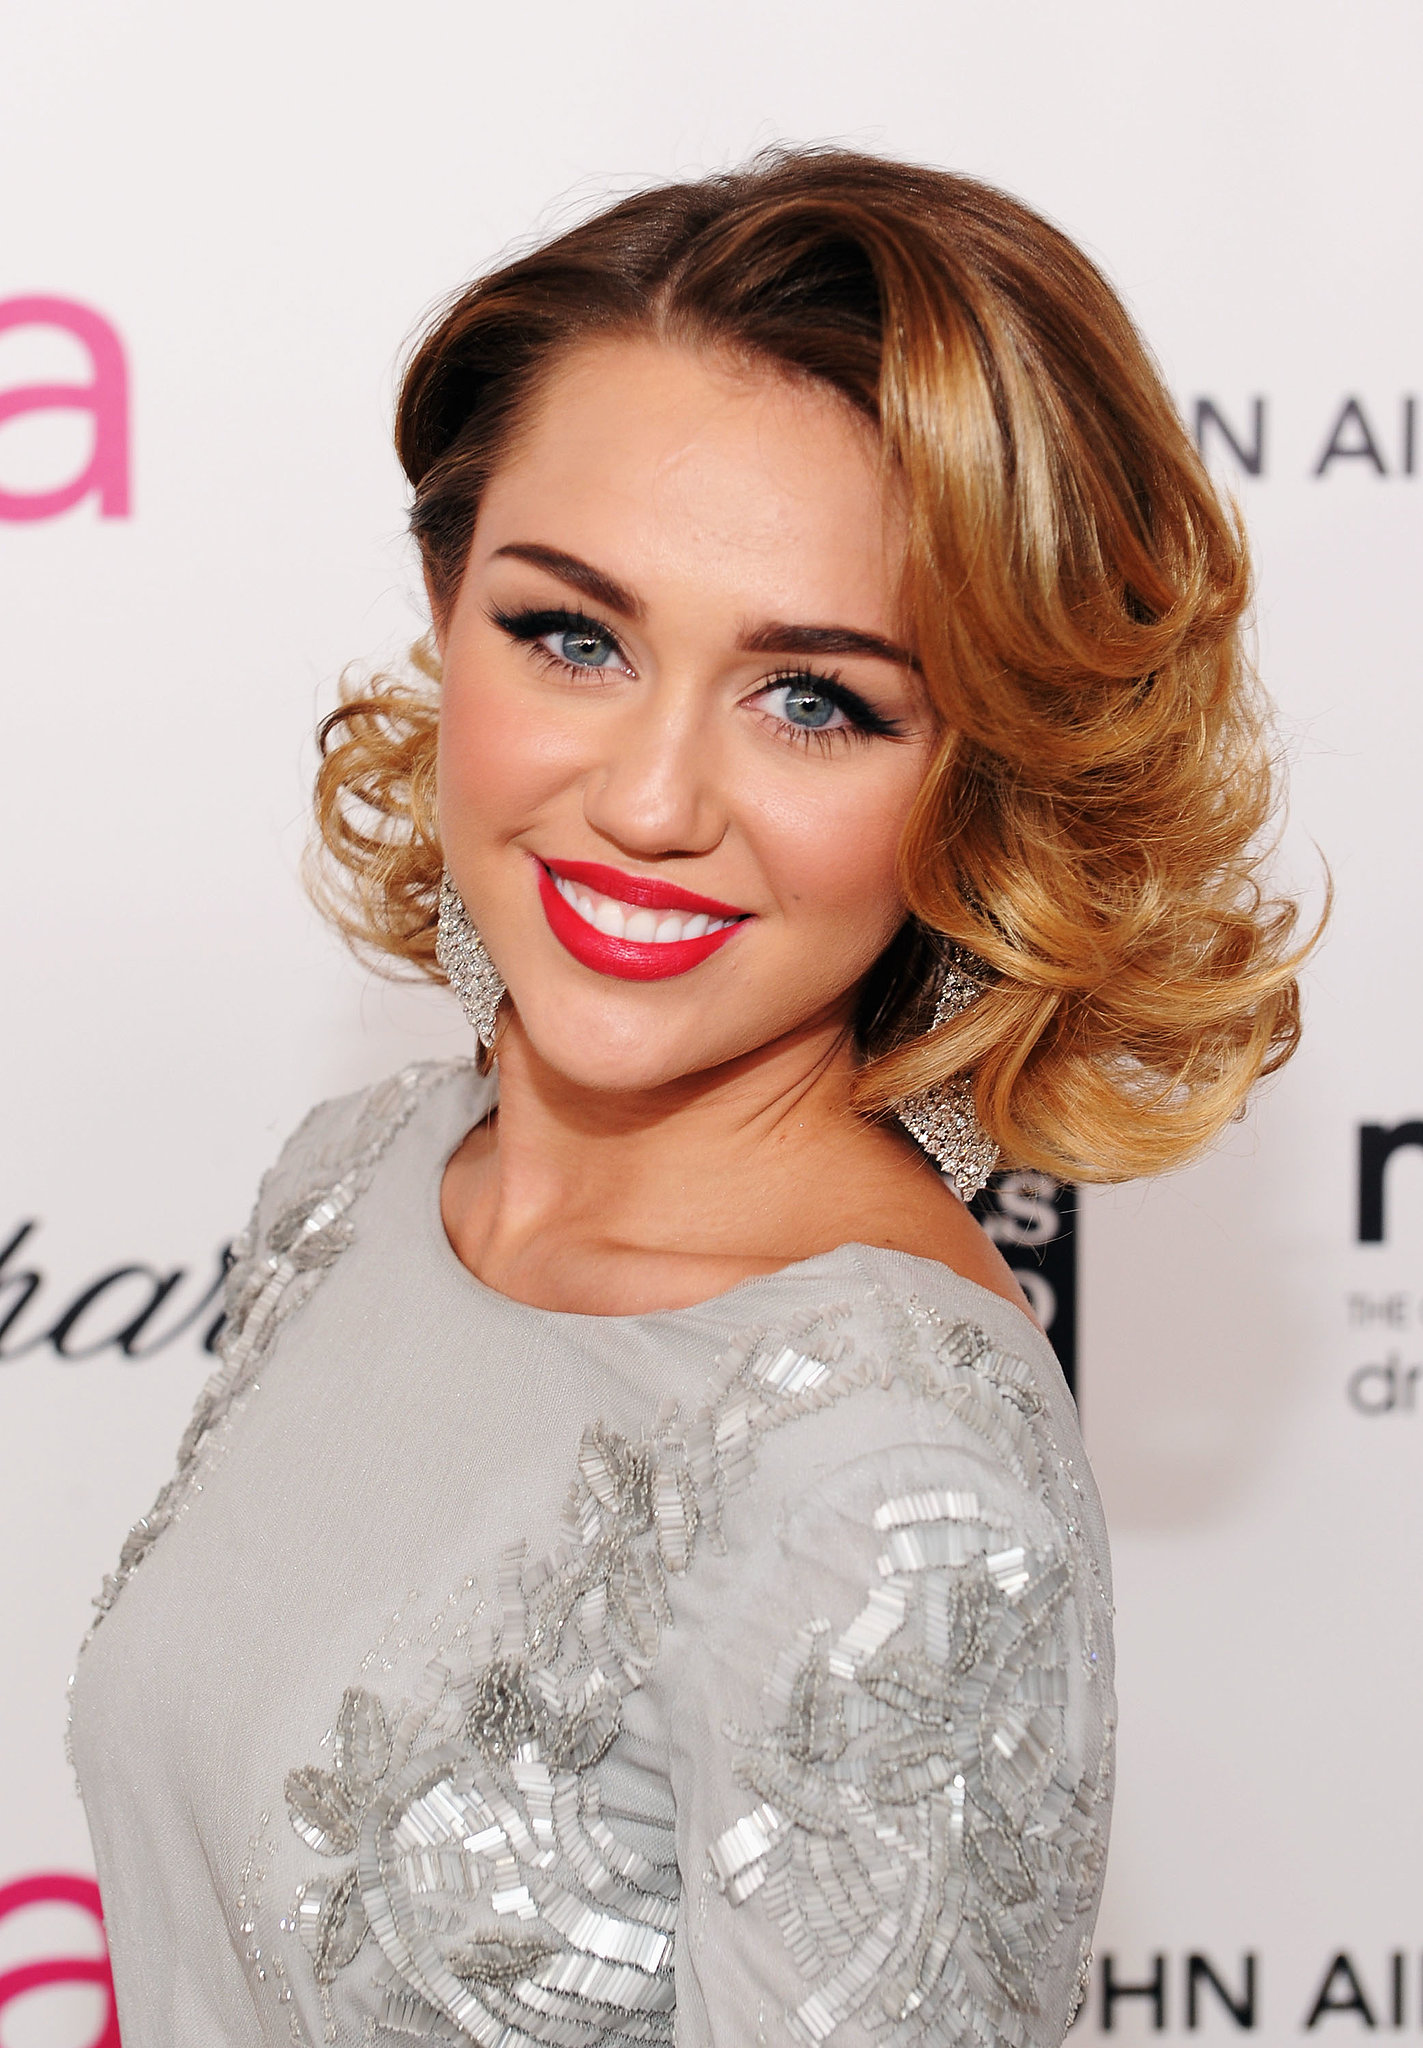 beauty fashion looks style miley cyrus